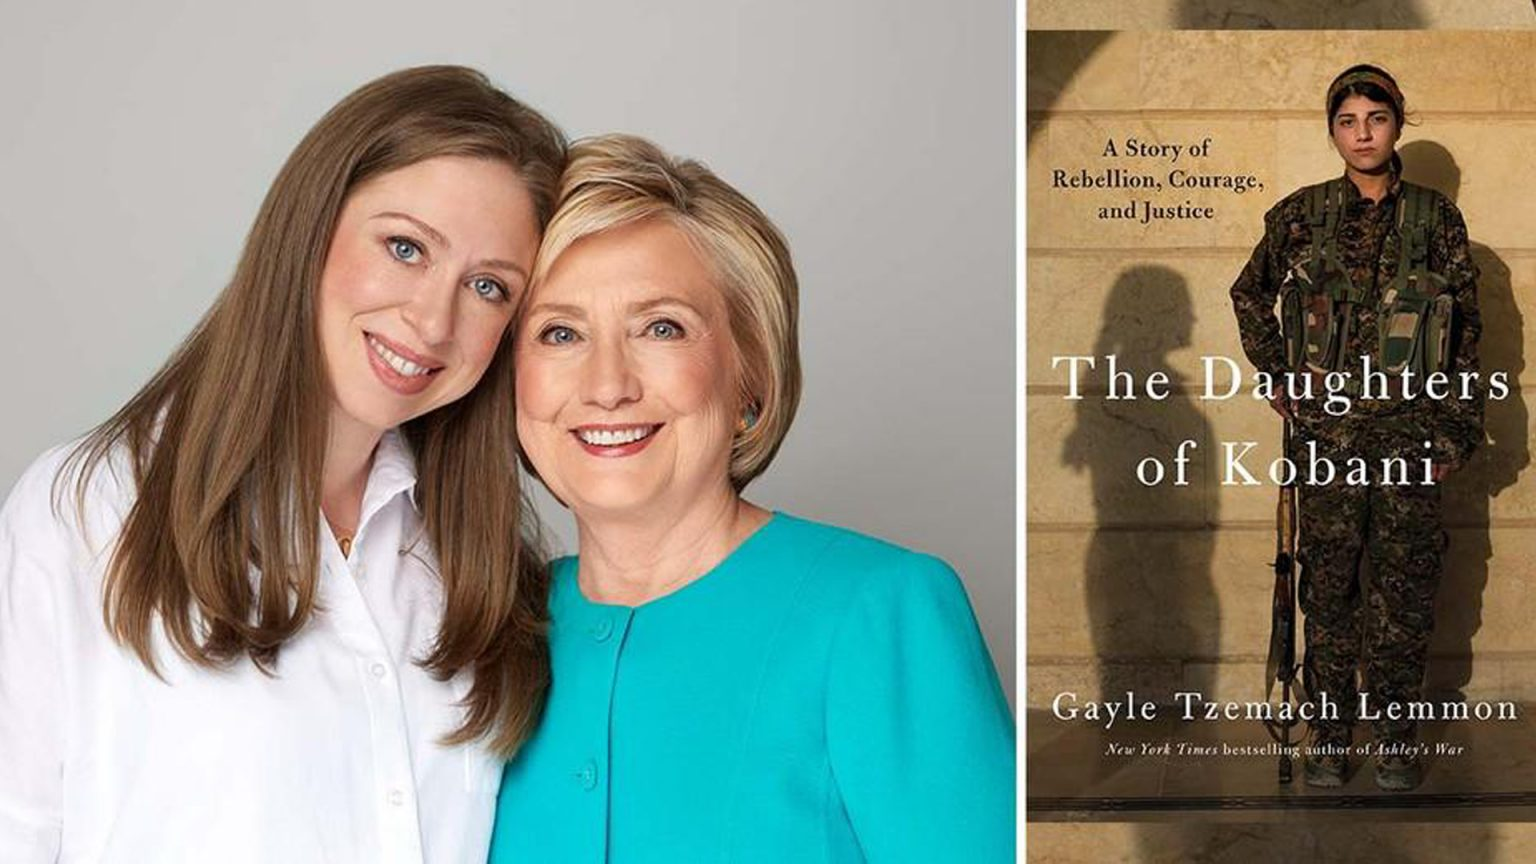 Hillary and Chelsea Clinton with The Daughters of Kobani book